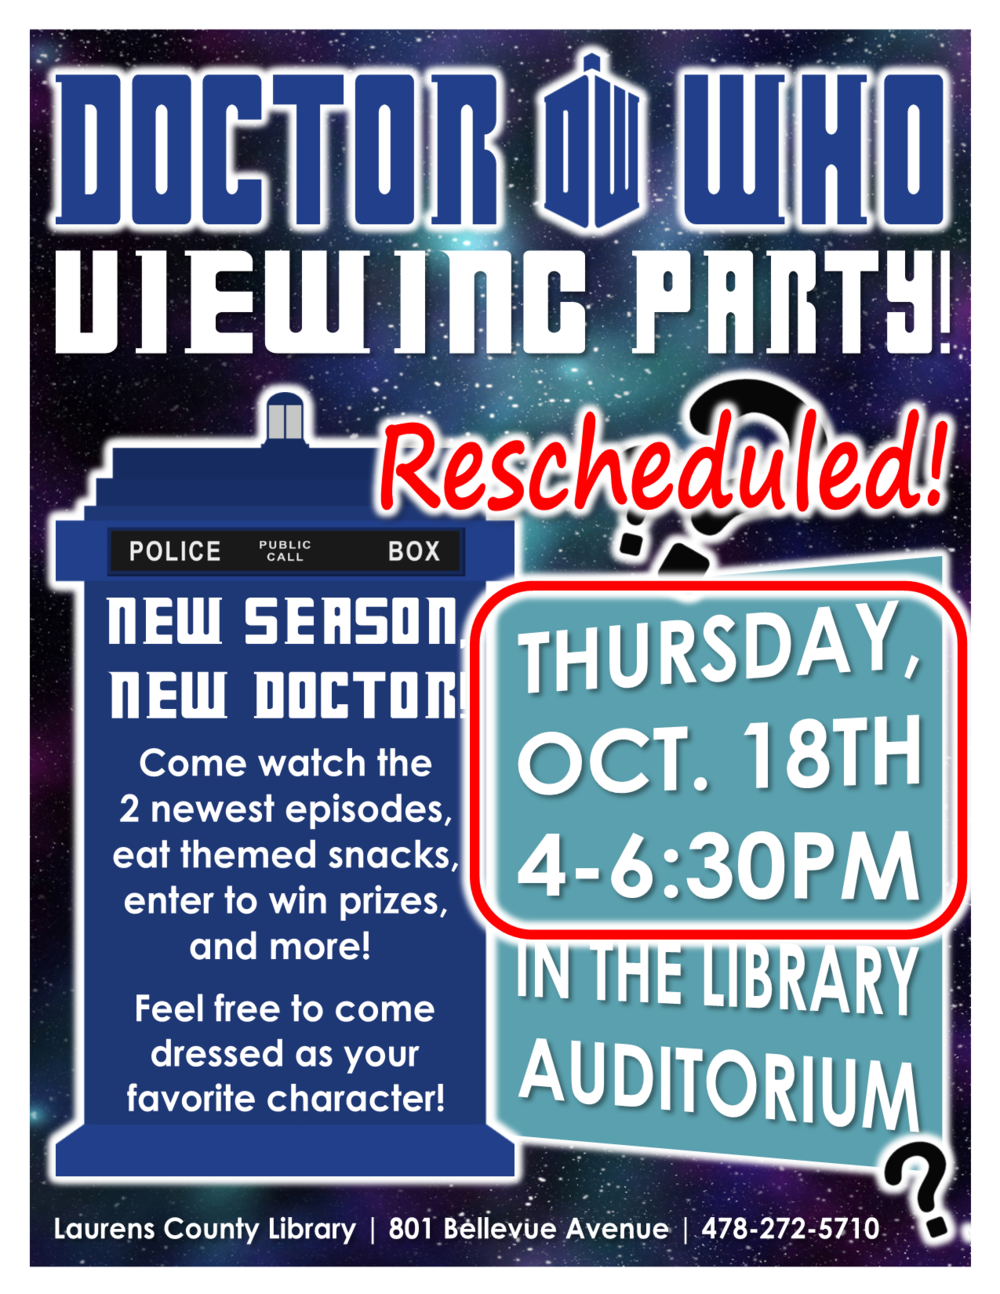 Due to inclement weather, this program has been rescheduled for Thursday, Oct. 18th.